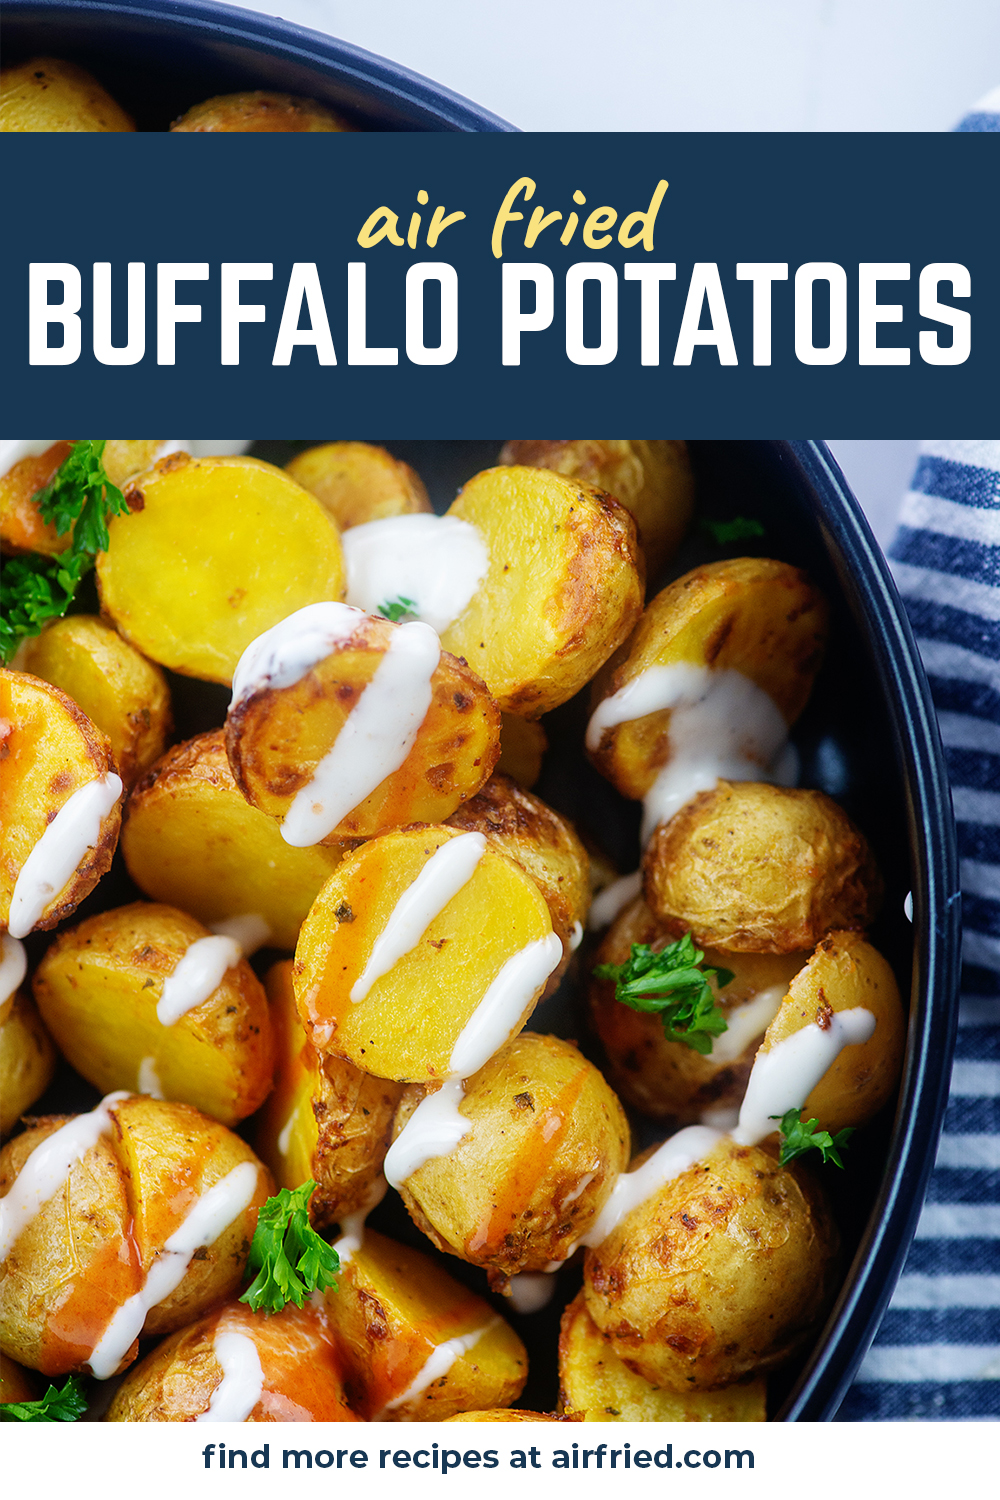 We are loving these potatoes covered in ranch and buffalo sauce! #airfried #buffalopotatoes #recipes